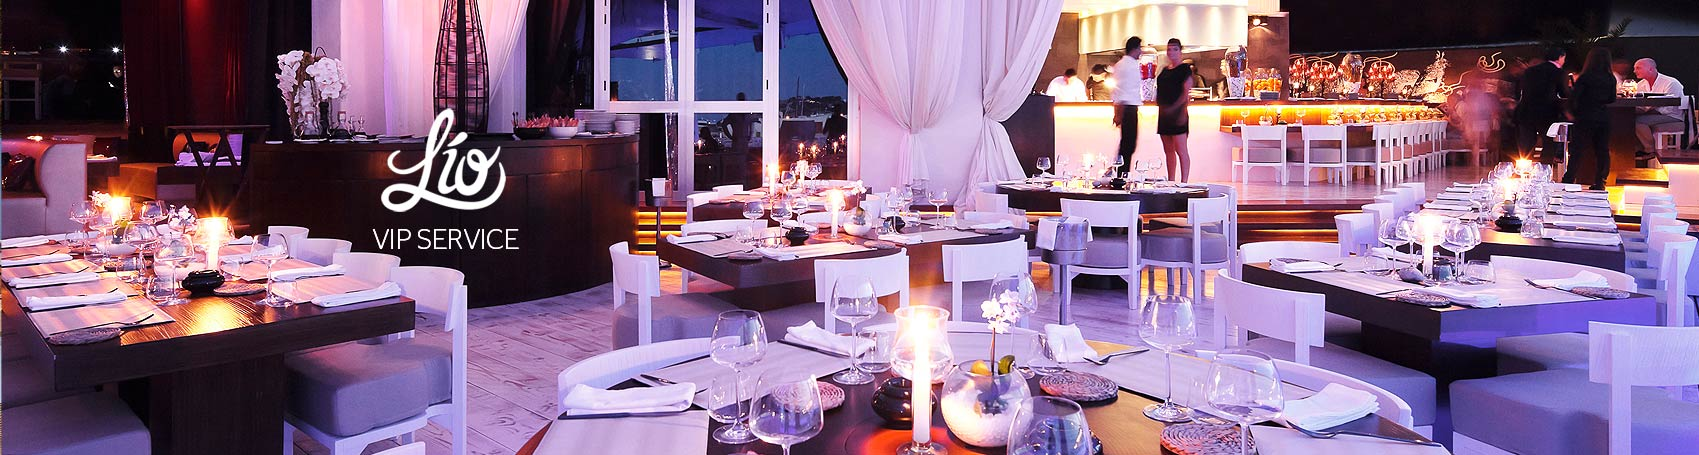 VIP table booking service club and restaurant Lio VIP in Ibiza. VIP services Ibiza. Consulting Services Ibiza